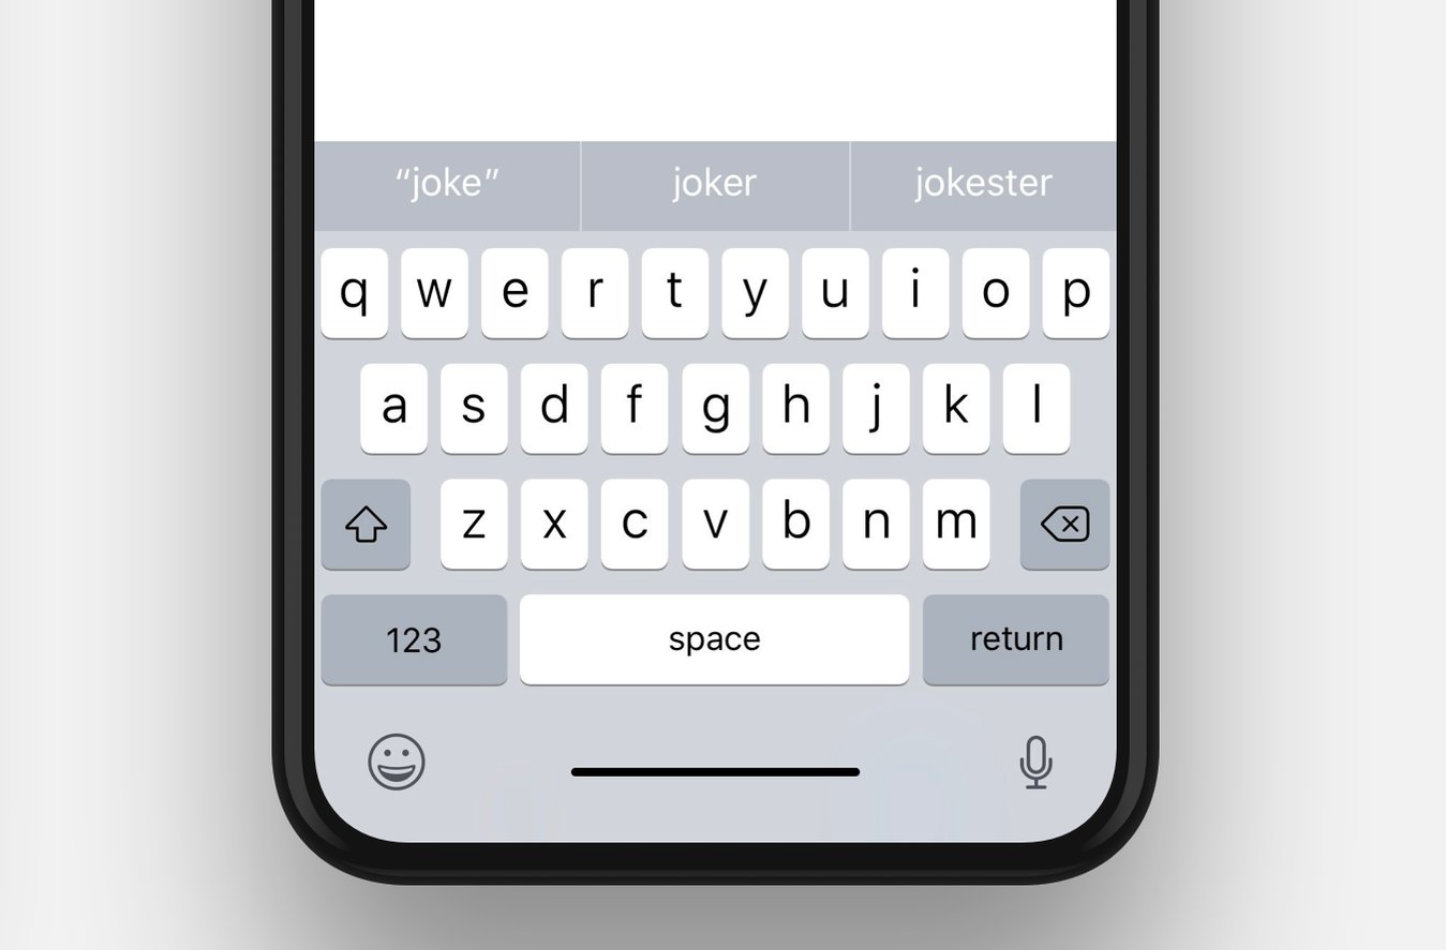 Iphonex keyboard image